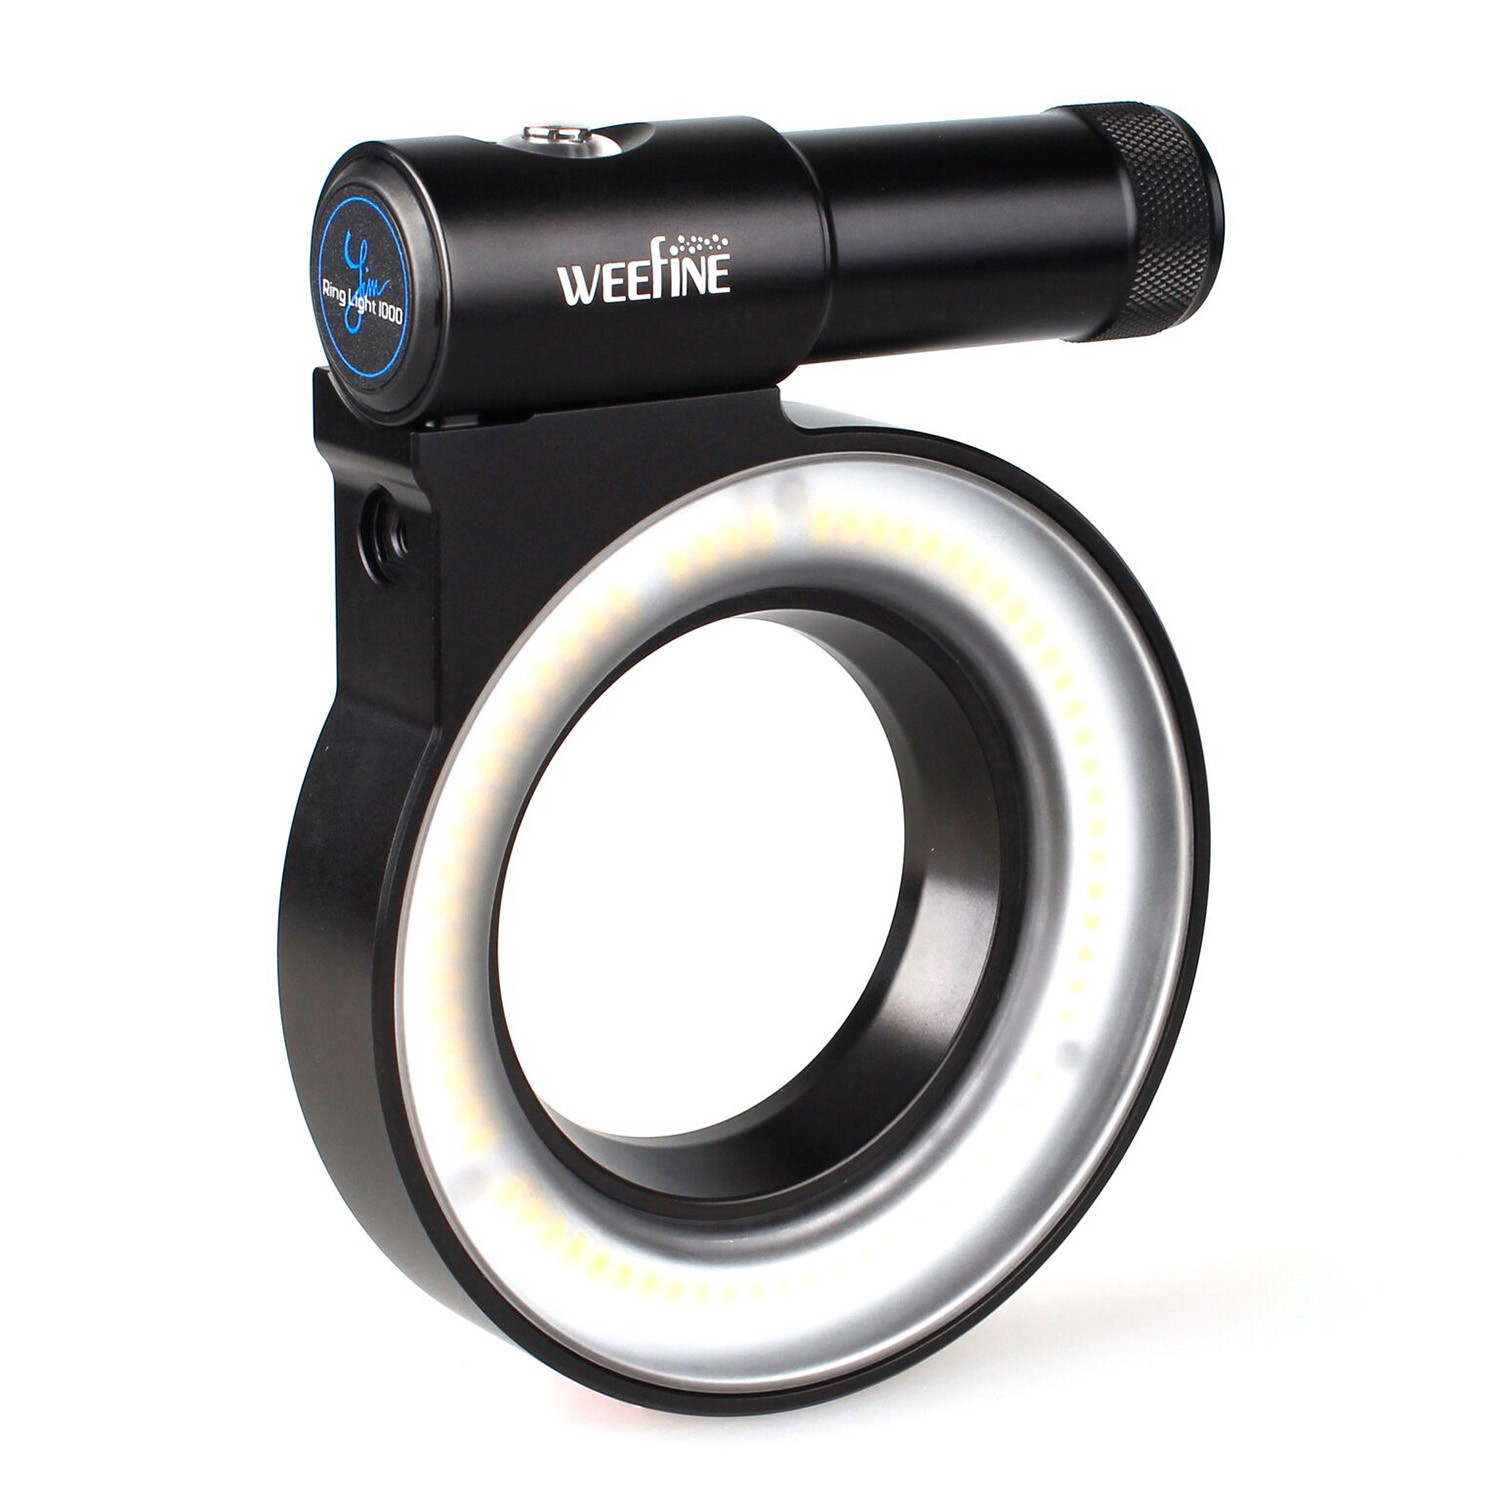 Kraken Ring Light 1000 (1000 Lumens) Underwater Video Light